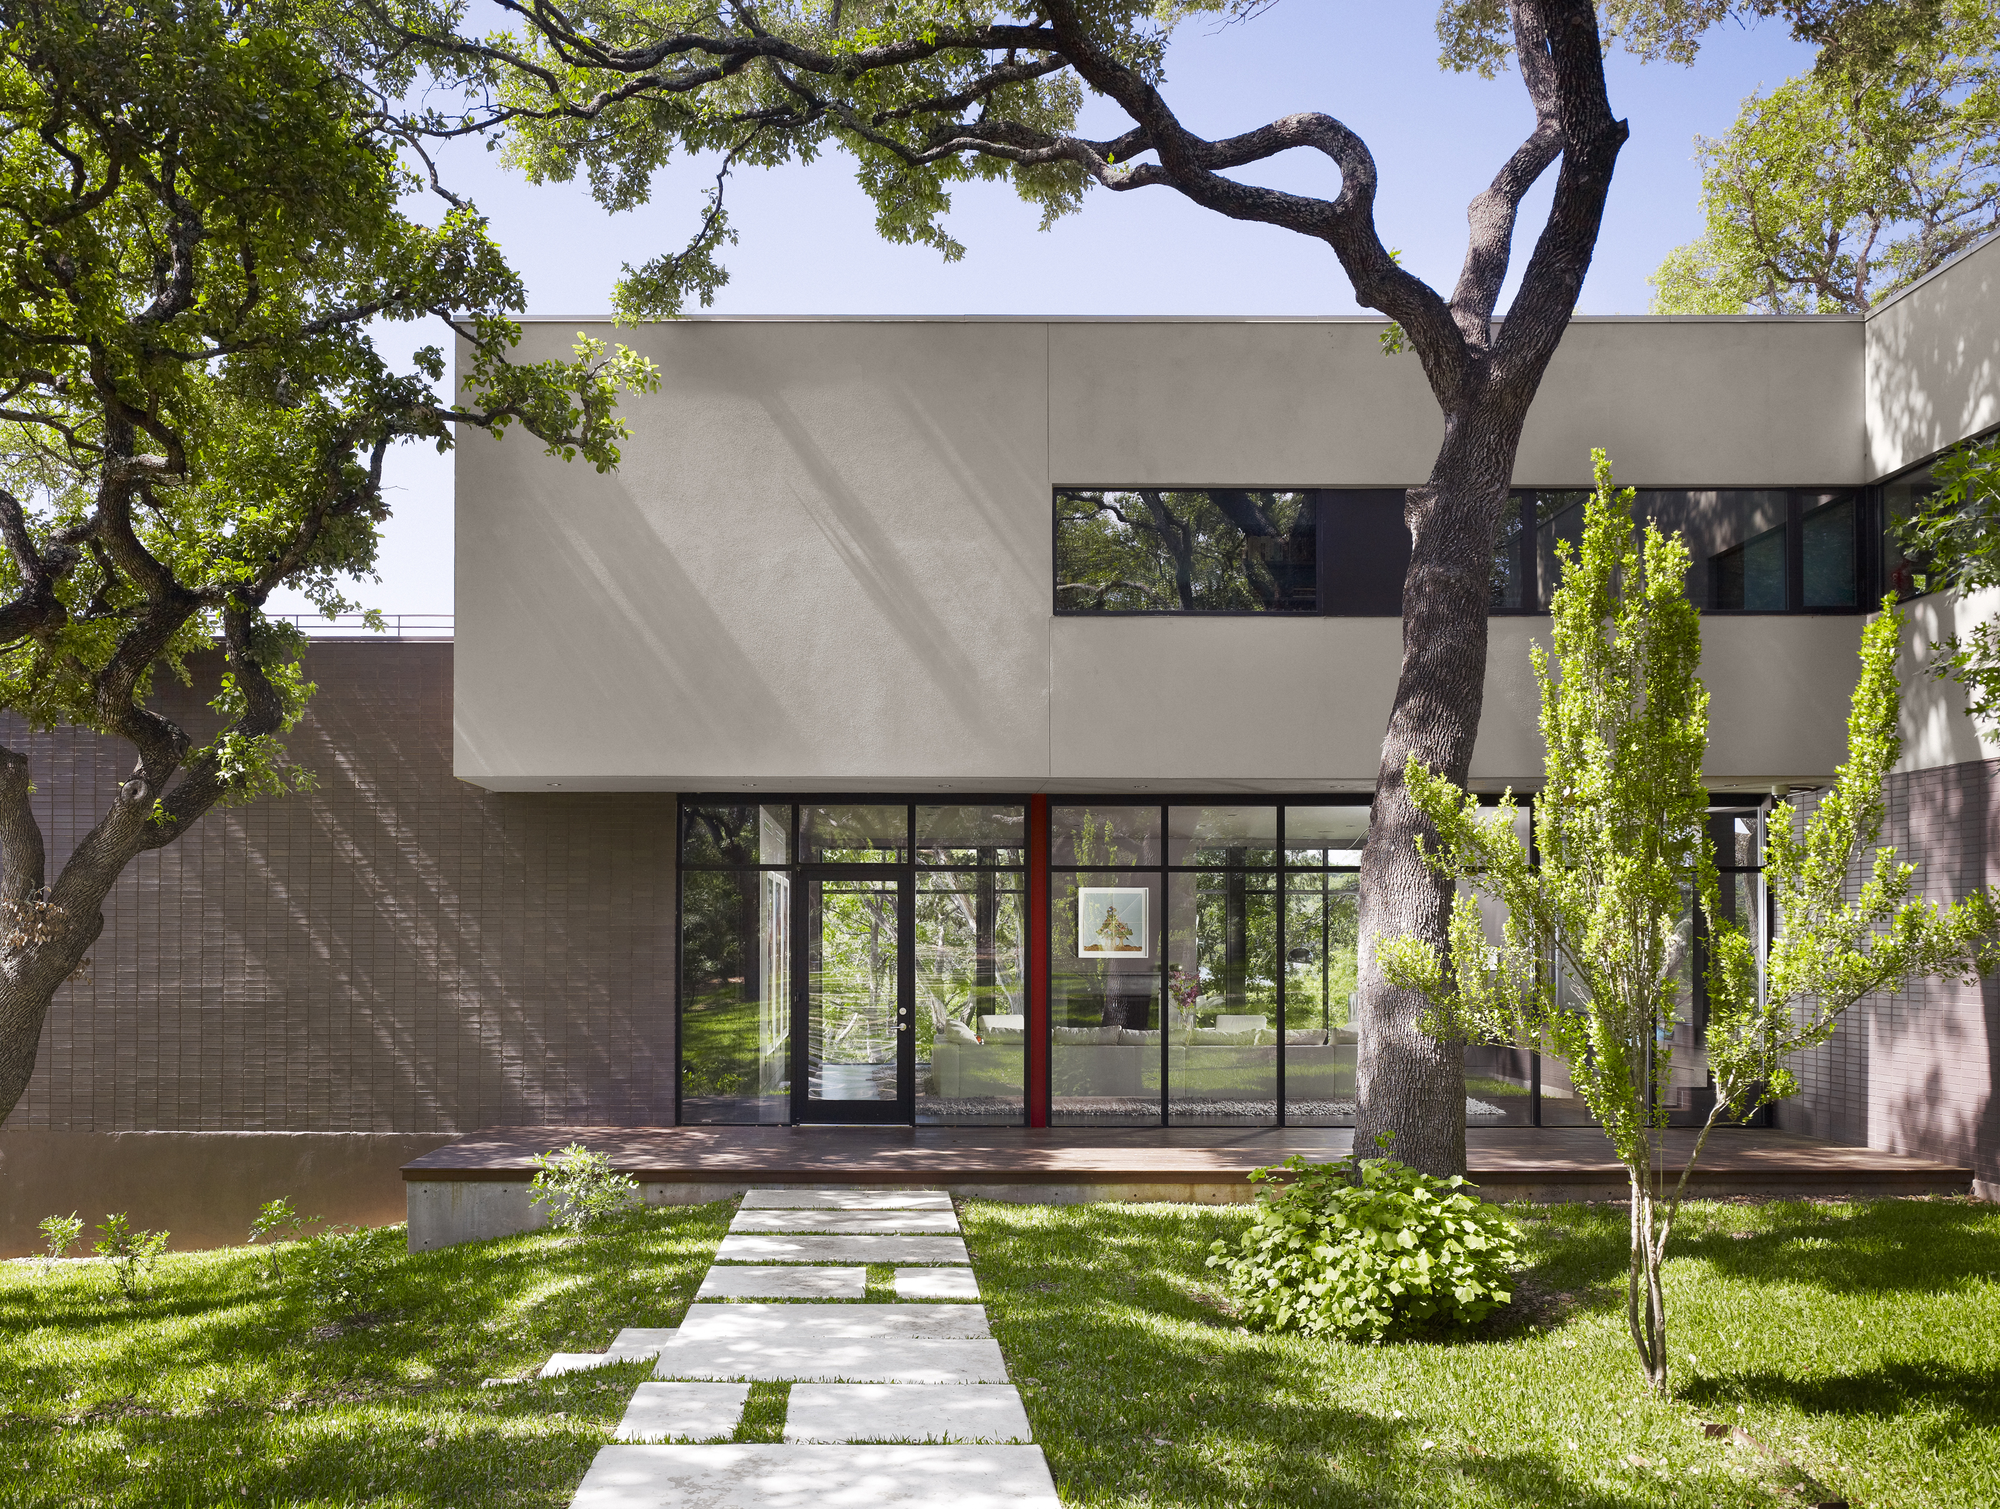 West lake hills residence specht harpman archdaily - Exteriores tropicales ...